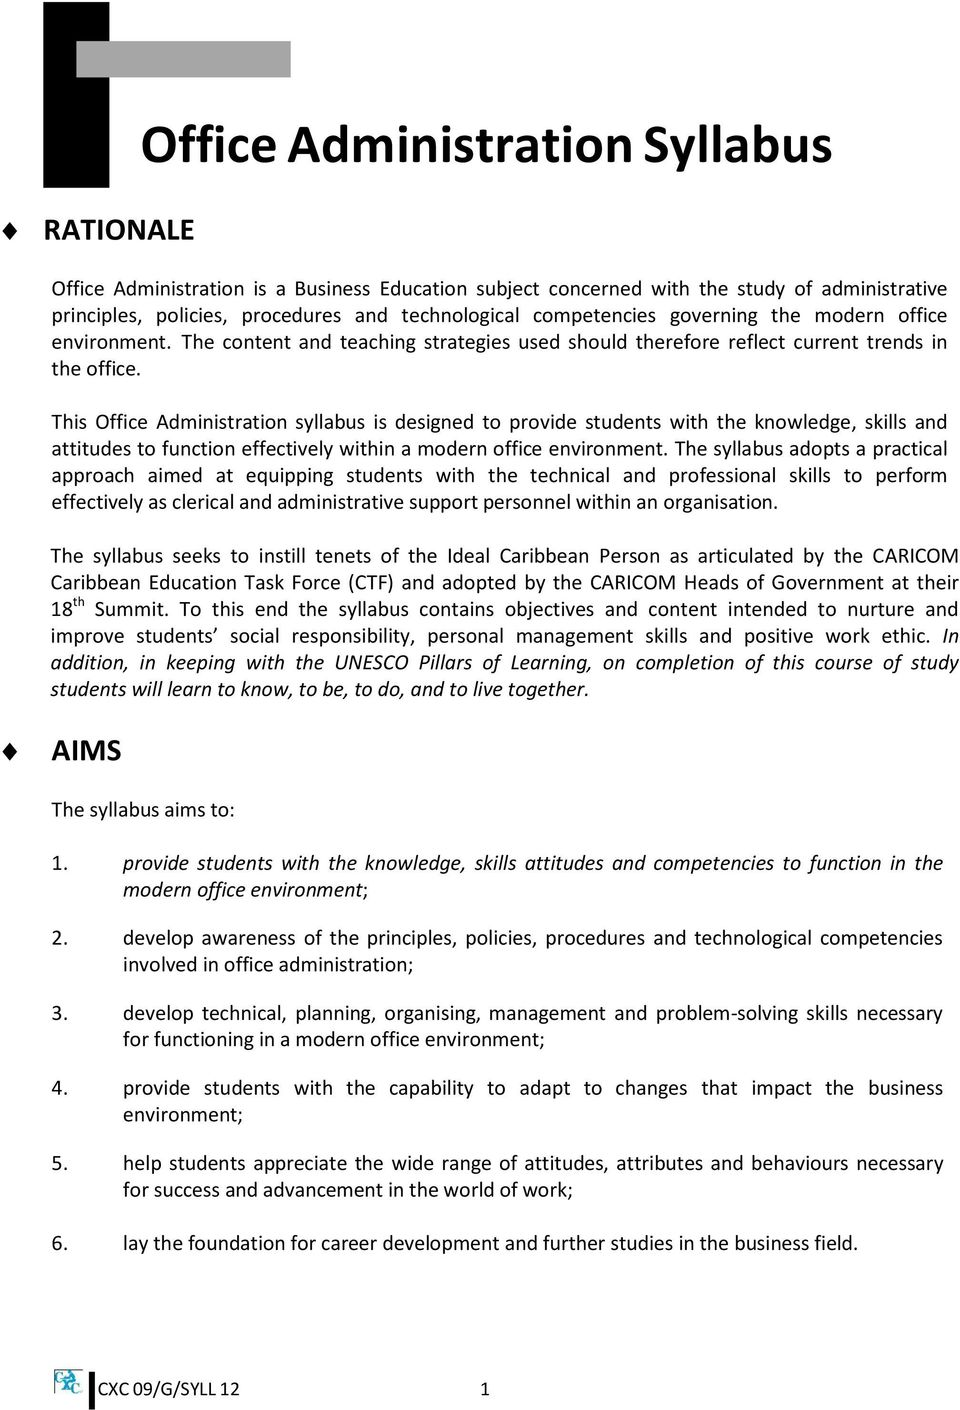 Office administration syllabus pdf this office administration syllabus is designed to provide students with the knowledge skills and attitudes fandeluxe Images